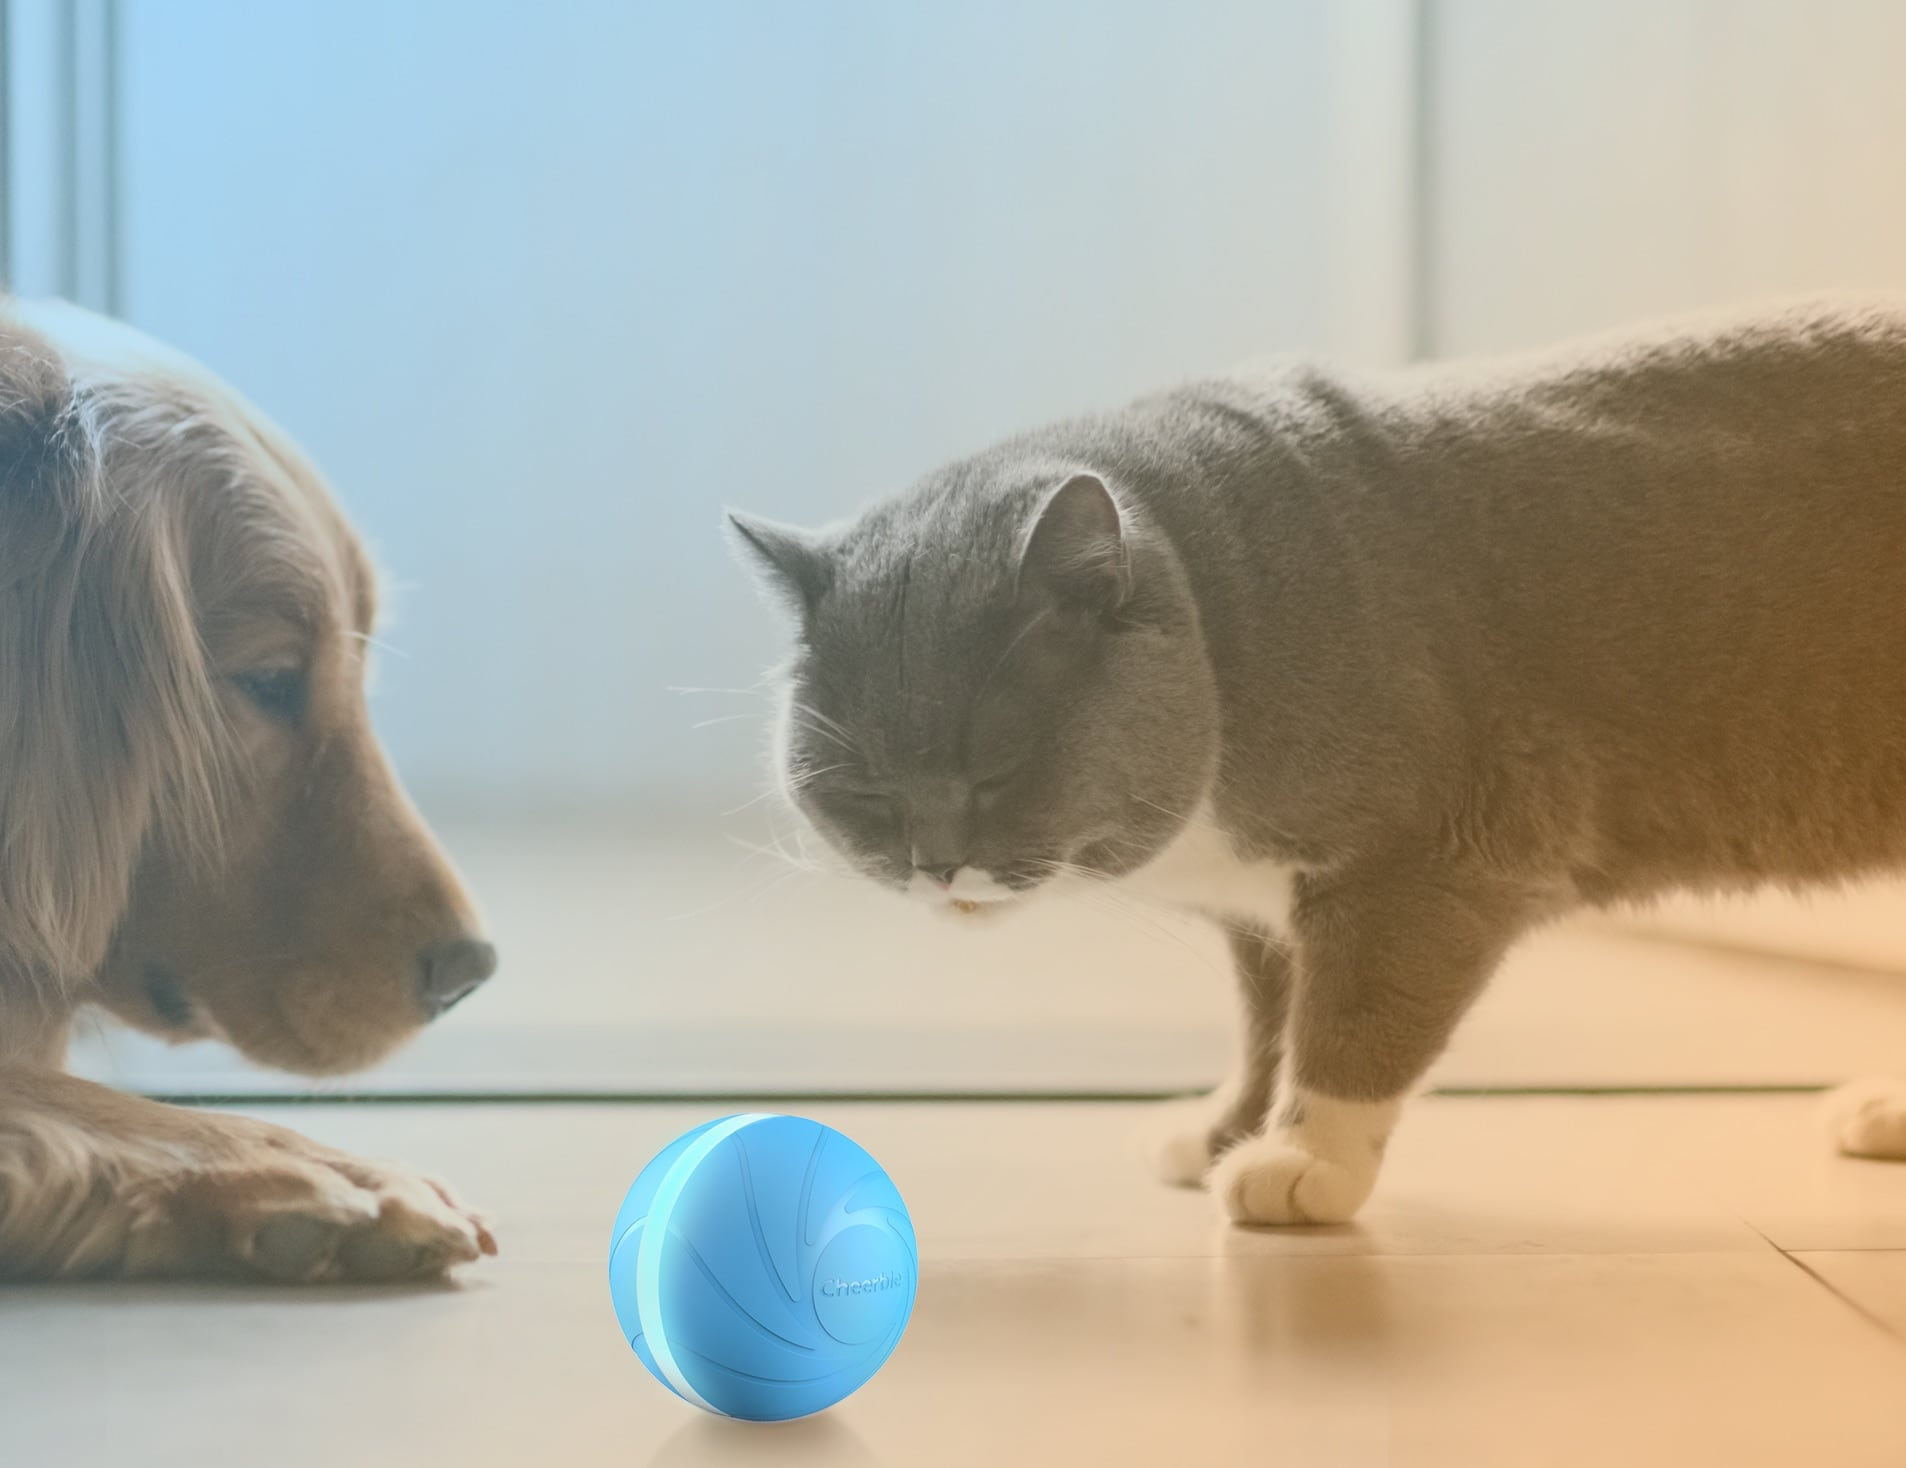 Cheerble Wicked Ball is a smart automatic pet toy for dogs